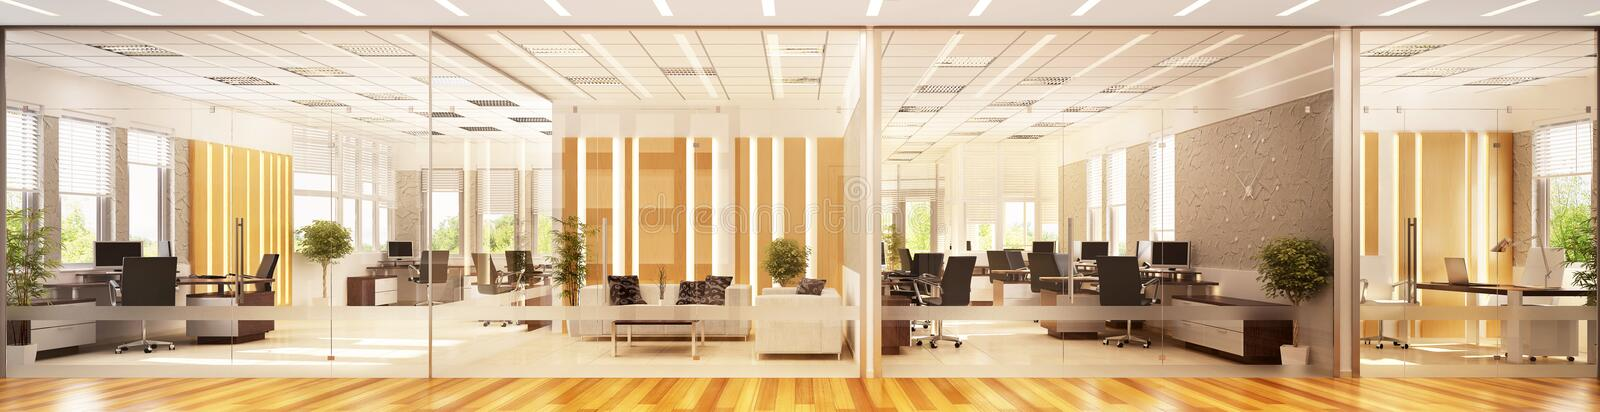 Modern interior design of a large office space royalty free stock images